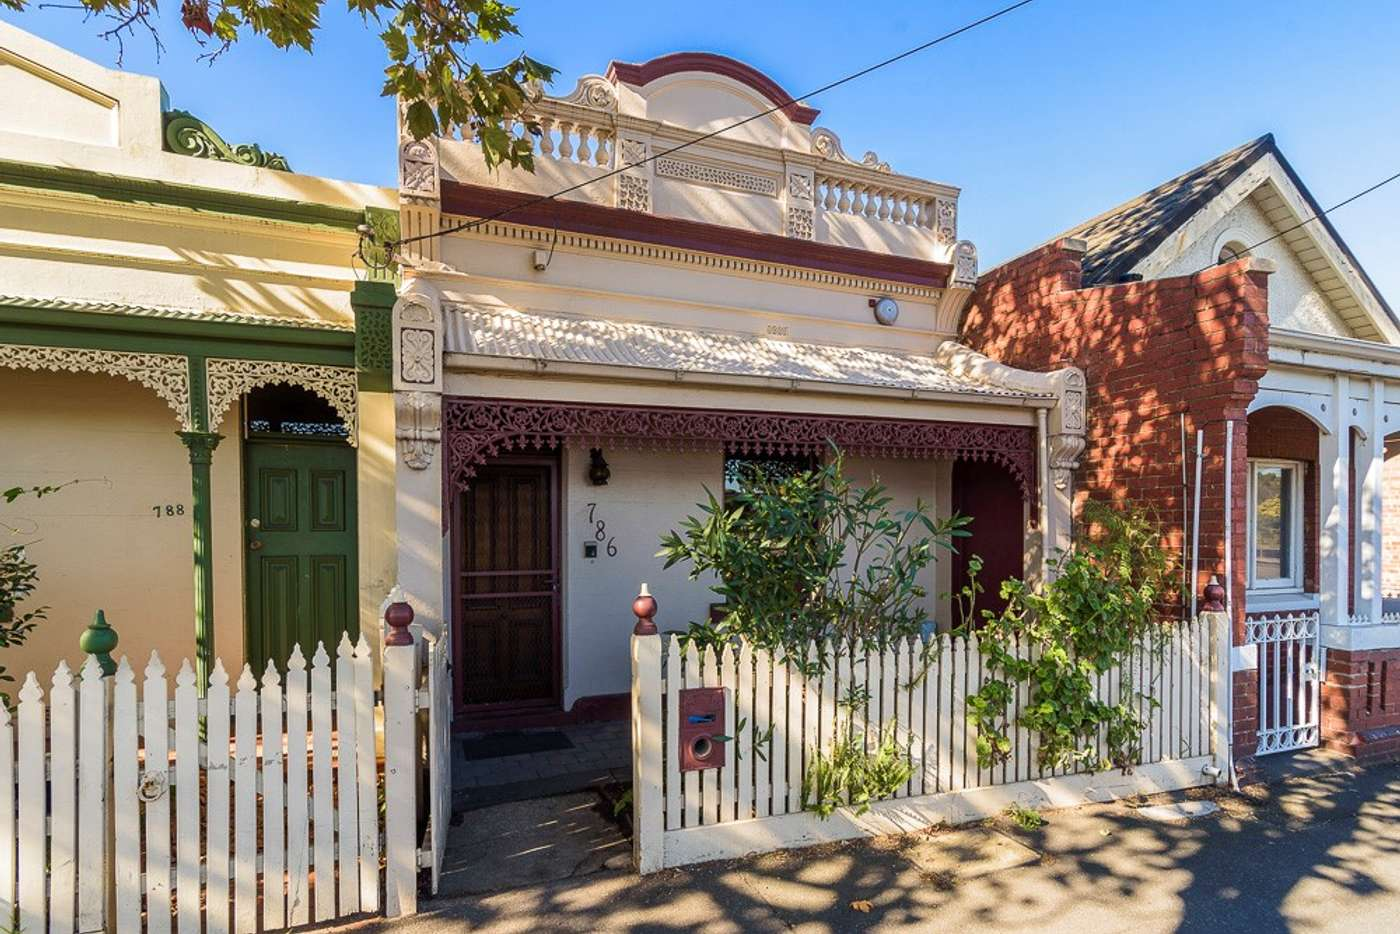 Main view of Homely house listing, 786 Lygon Street, Carlton VIC 3053